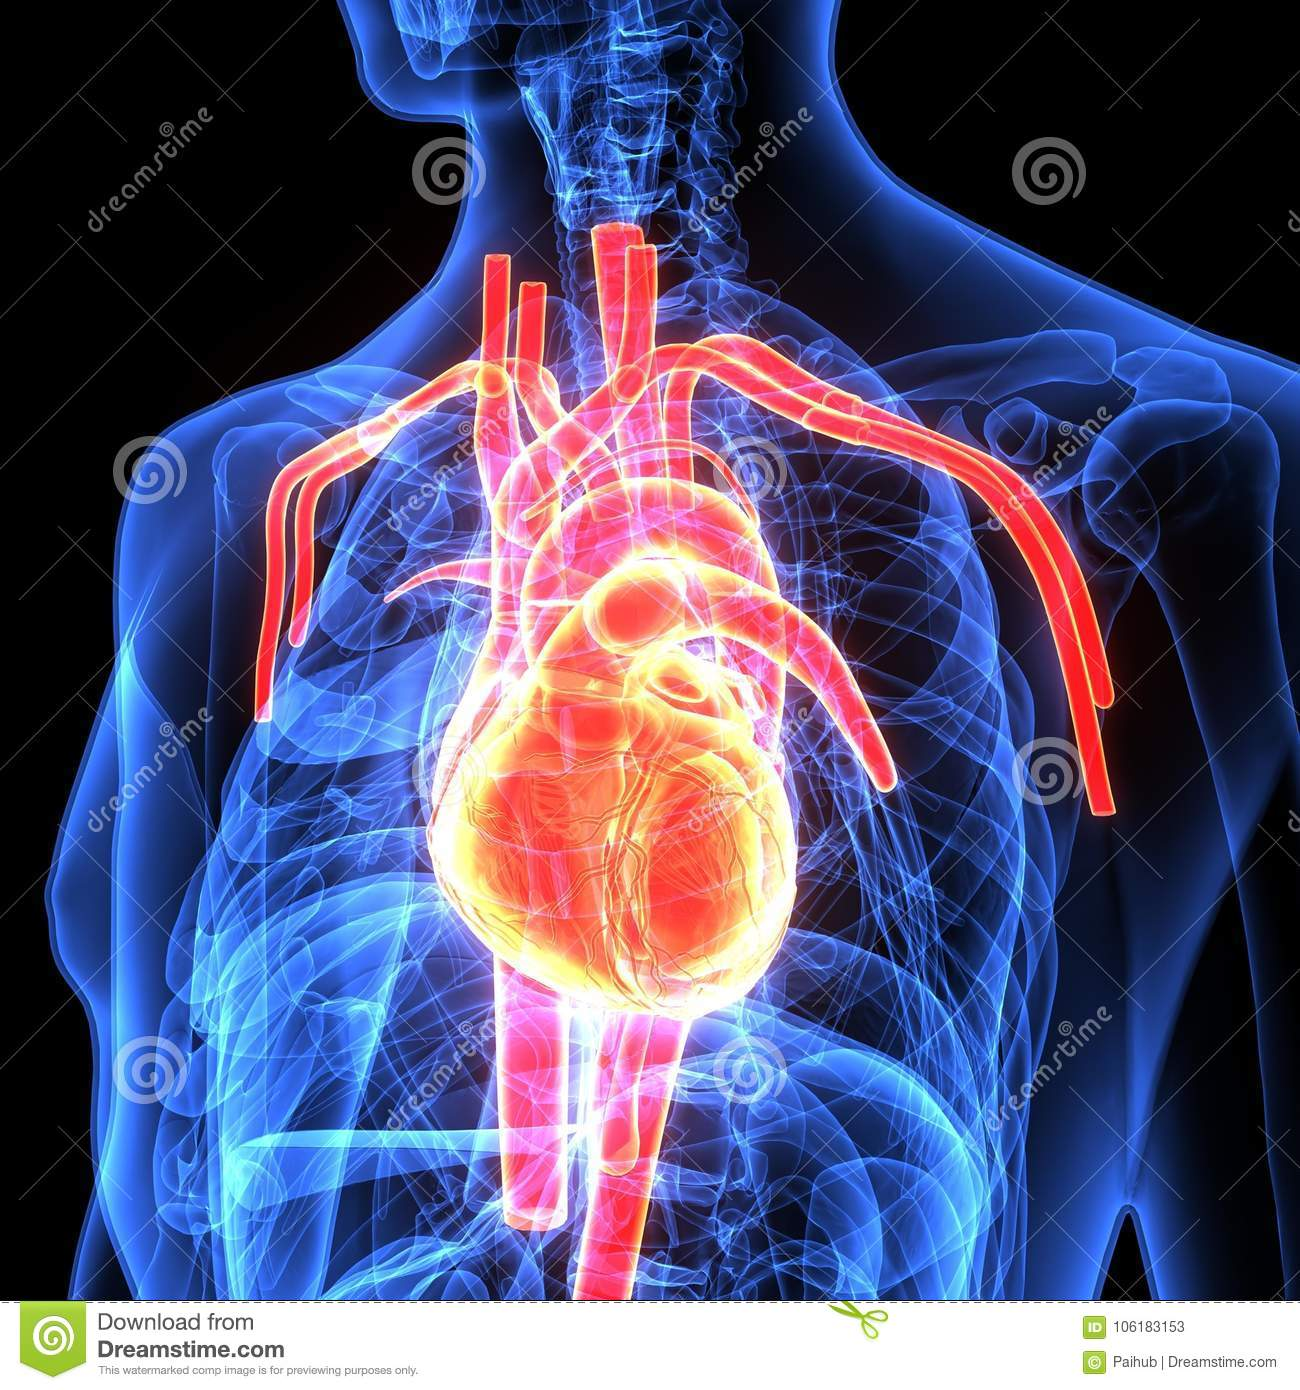 3d Illustration Of Human Body Heart Anatomy Stock Illustration